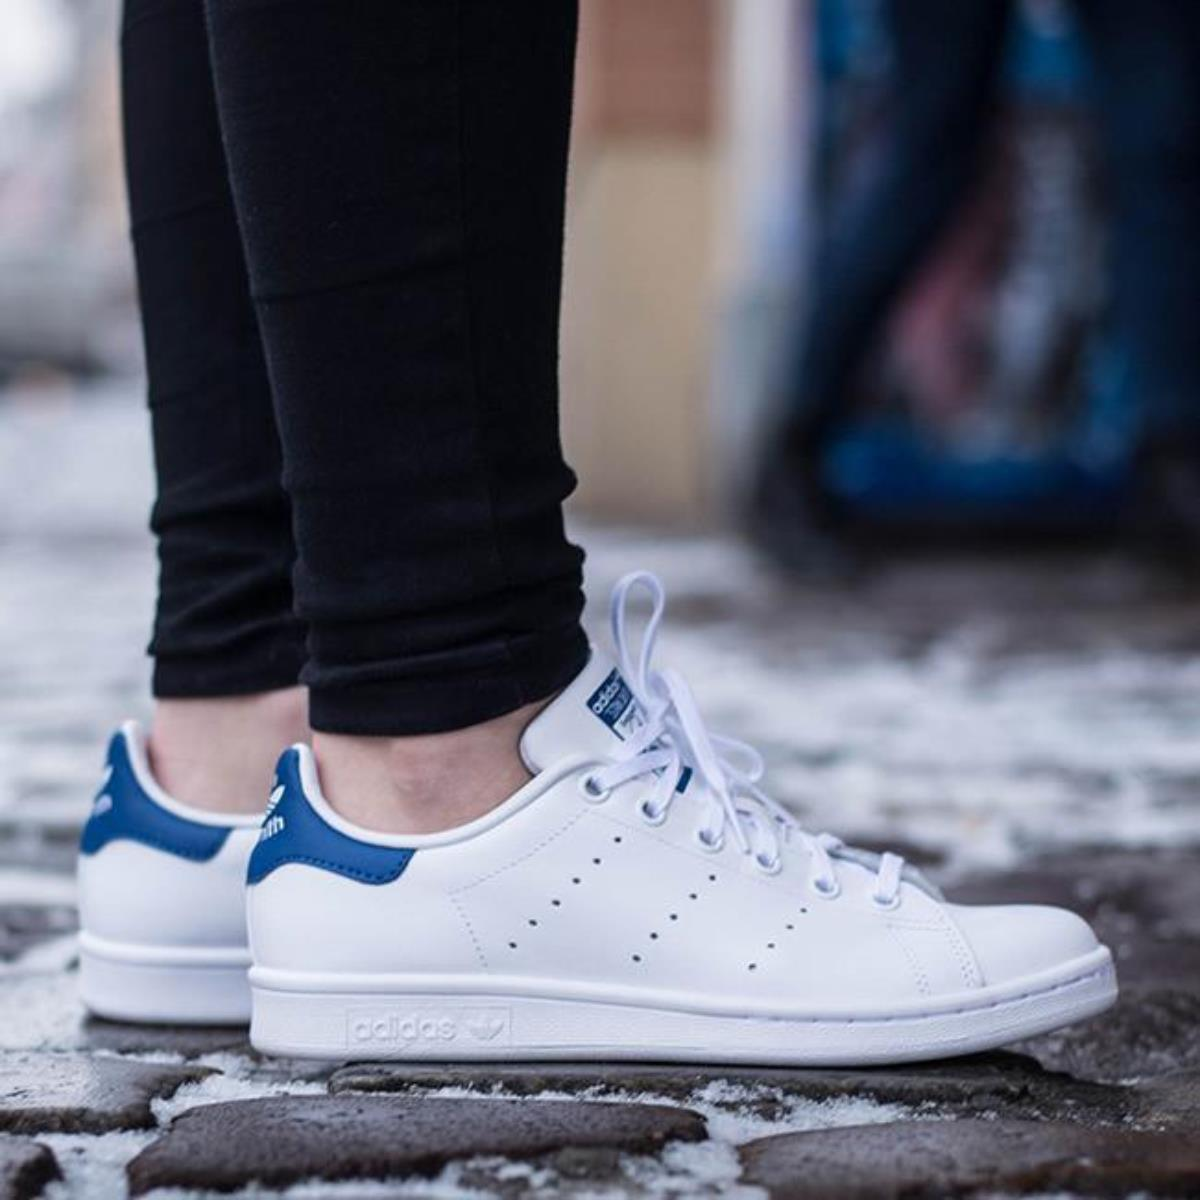 adidas stan smith màu classic blue